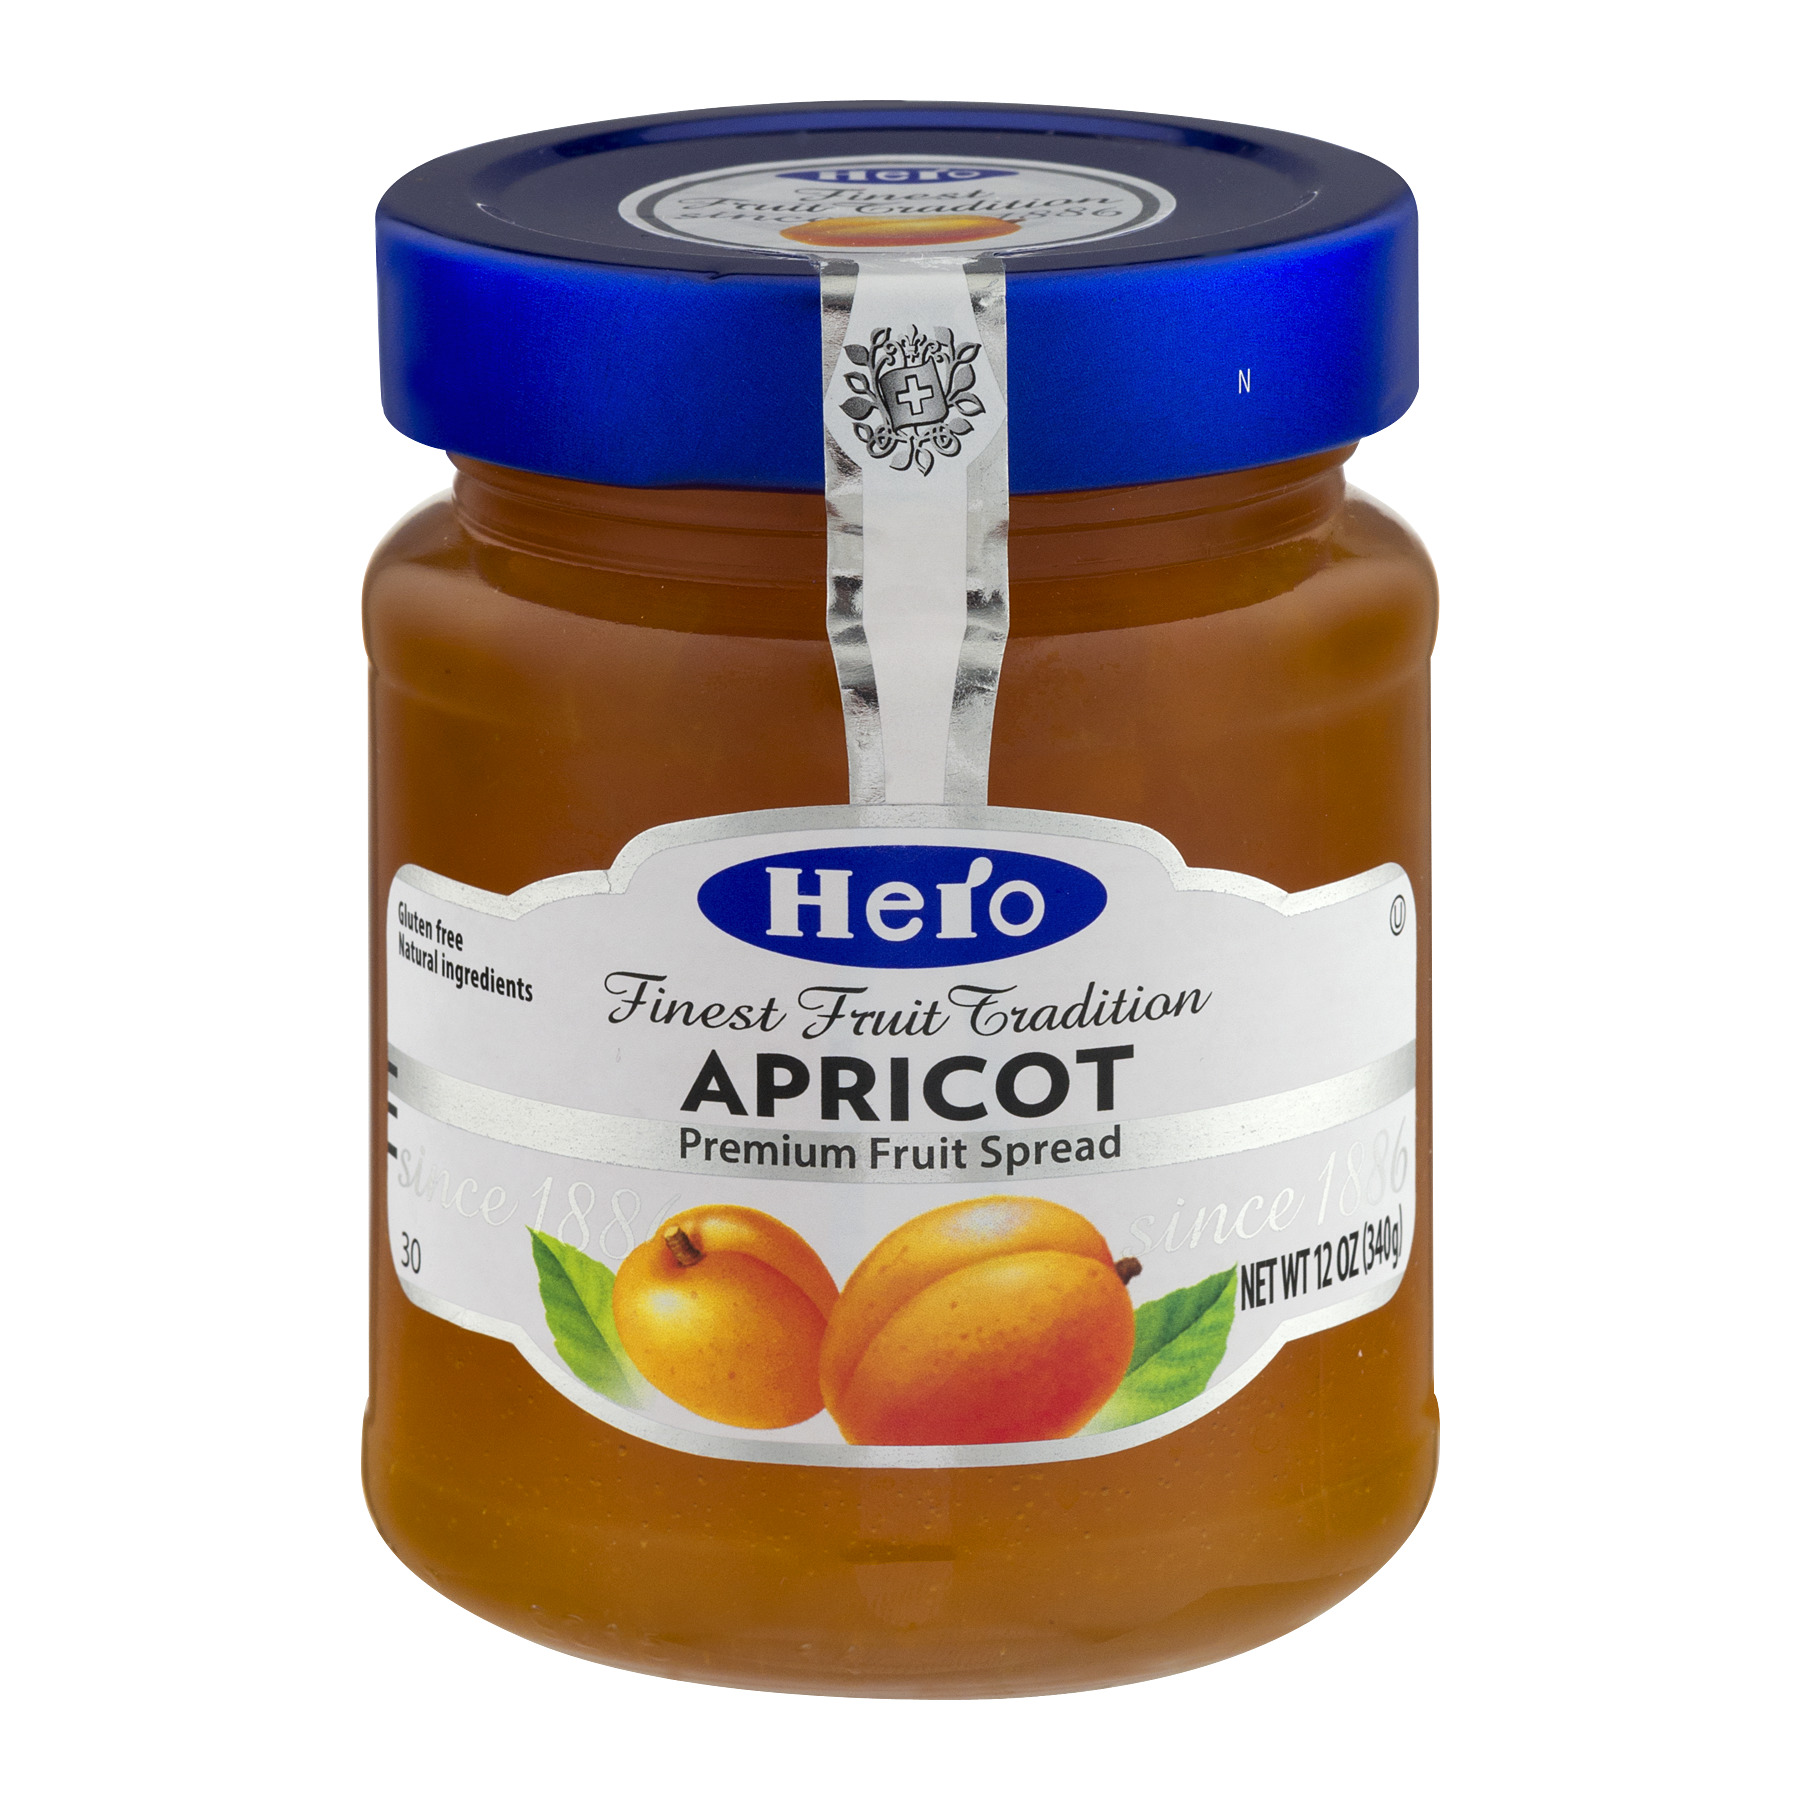 Hero Fruit Spread, Apricot, 12-Ounce (Pack of 8)